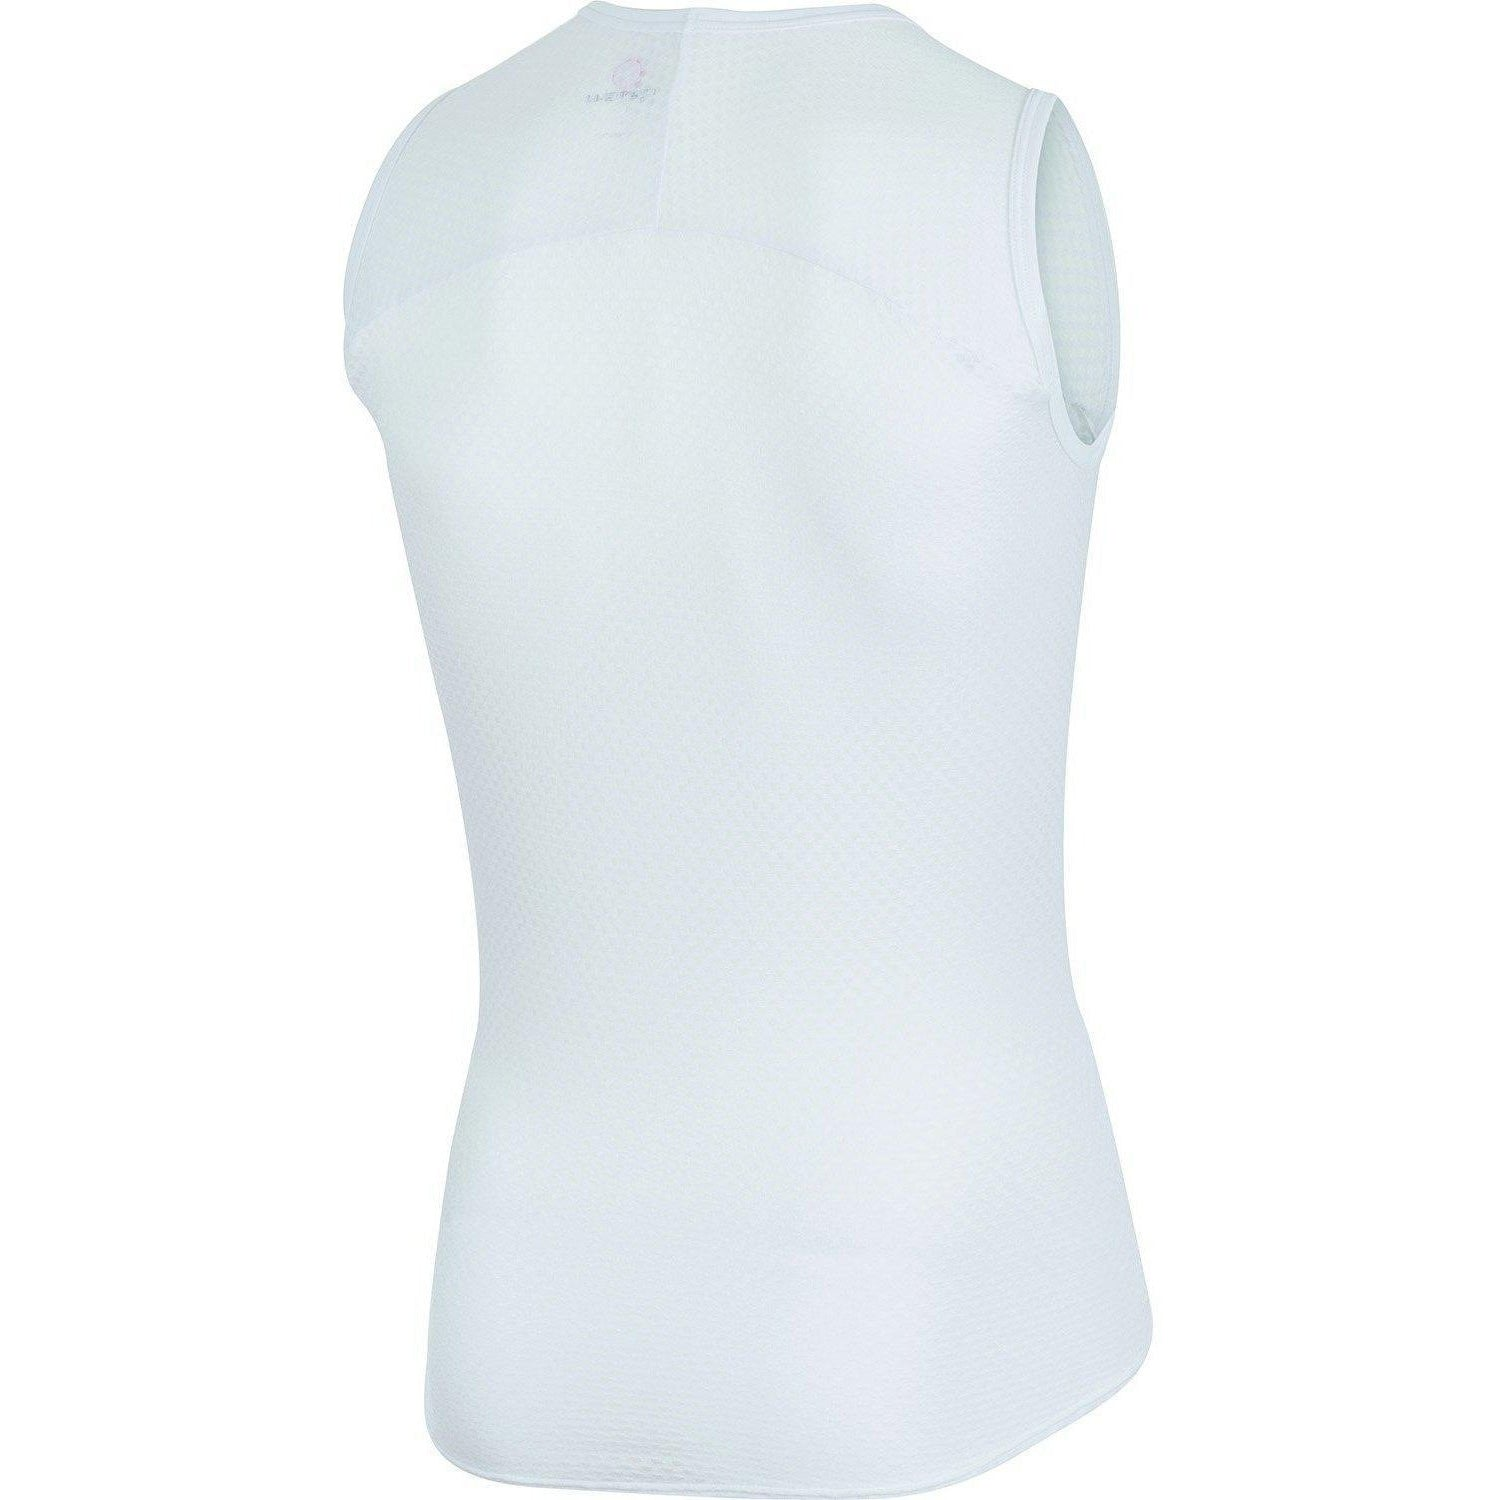 Castelli-Castelli Pro Issue Sleeveless Base Layer--saddleback-elite-performance-cycling